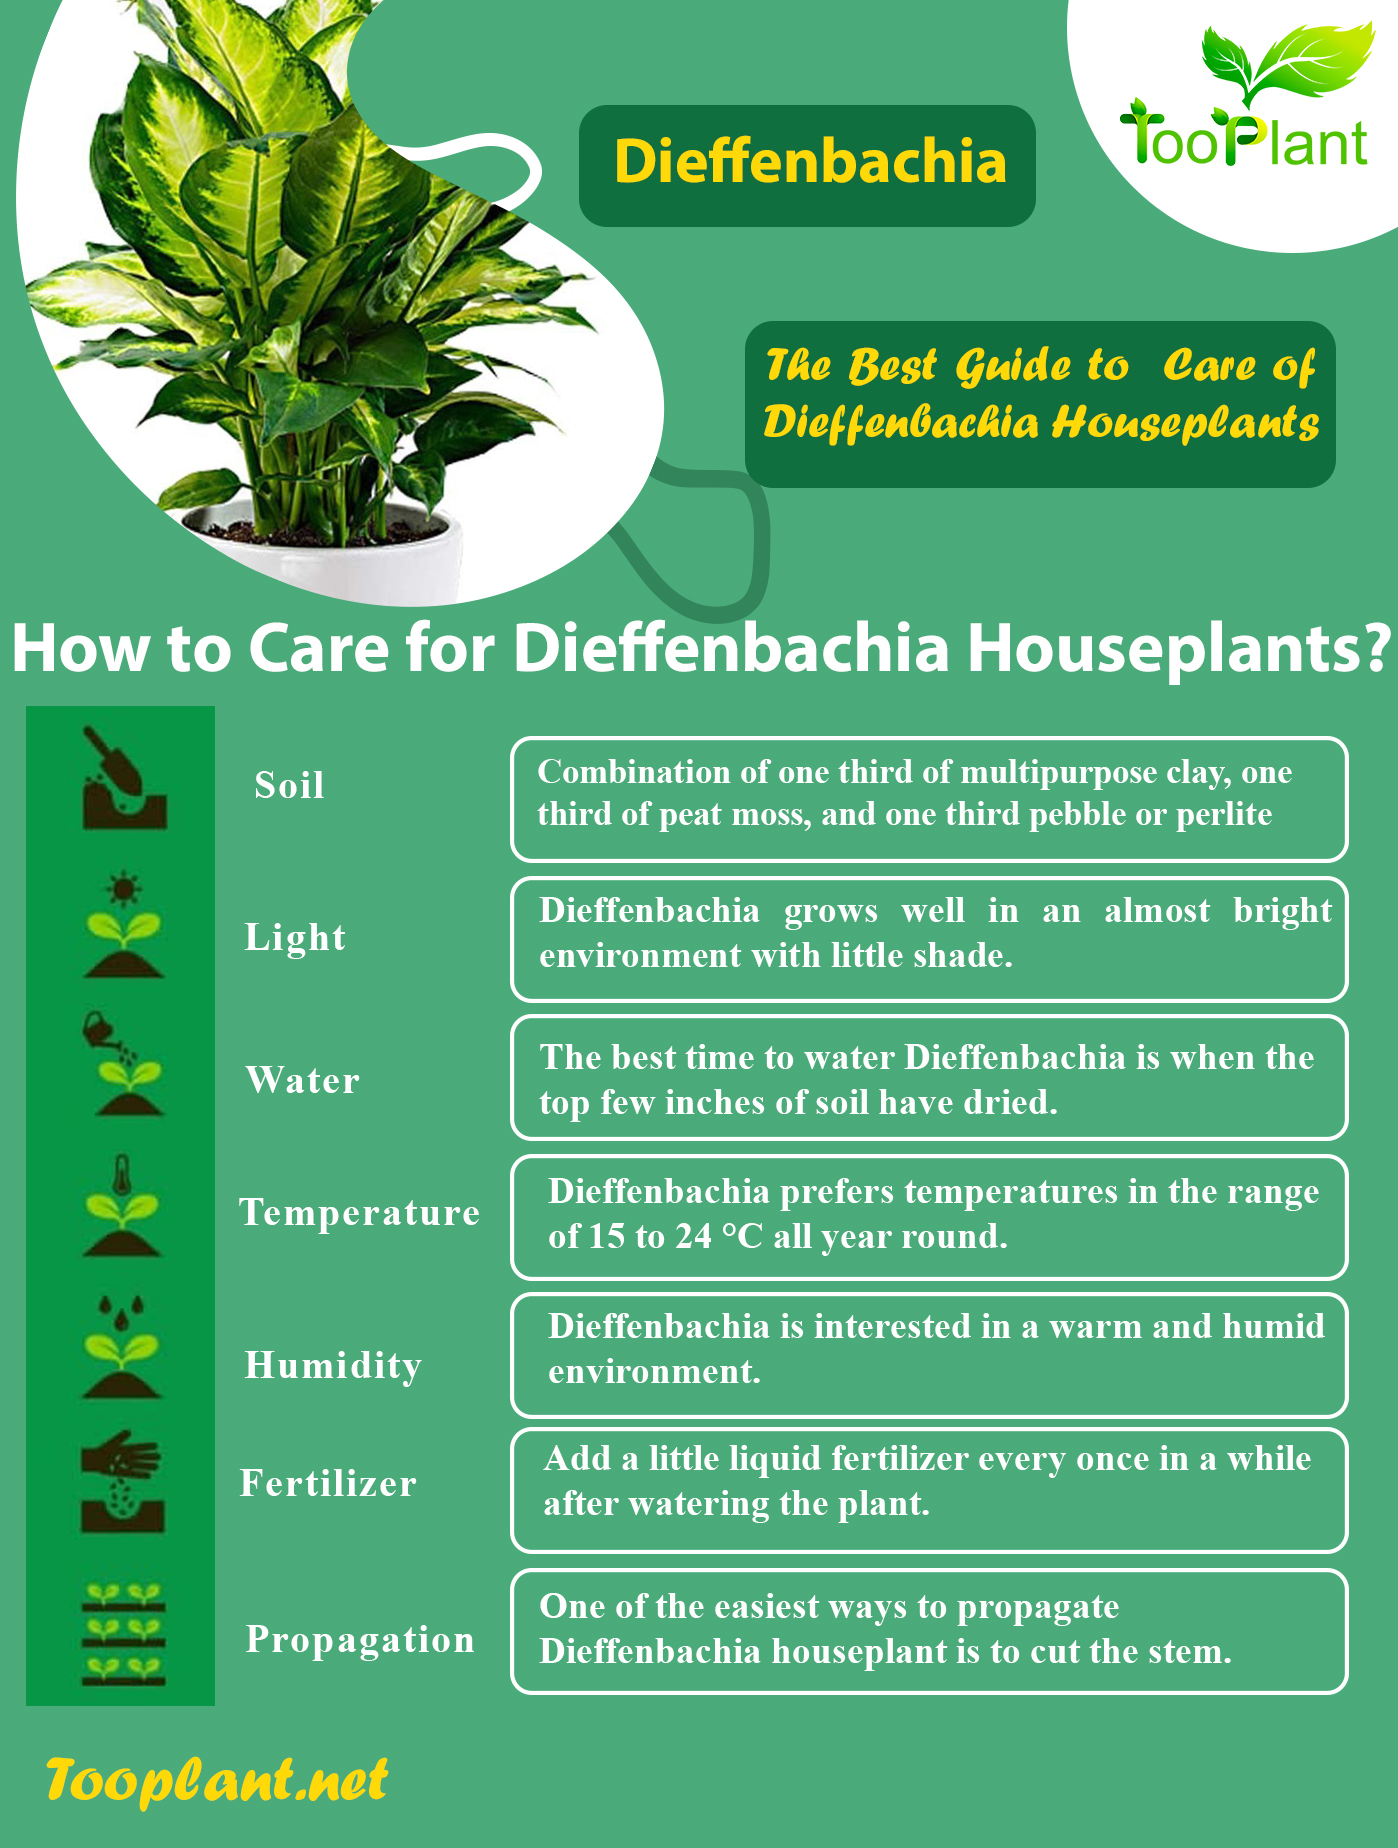 Infographic of Care for Dieffenbachia Houseplants